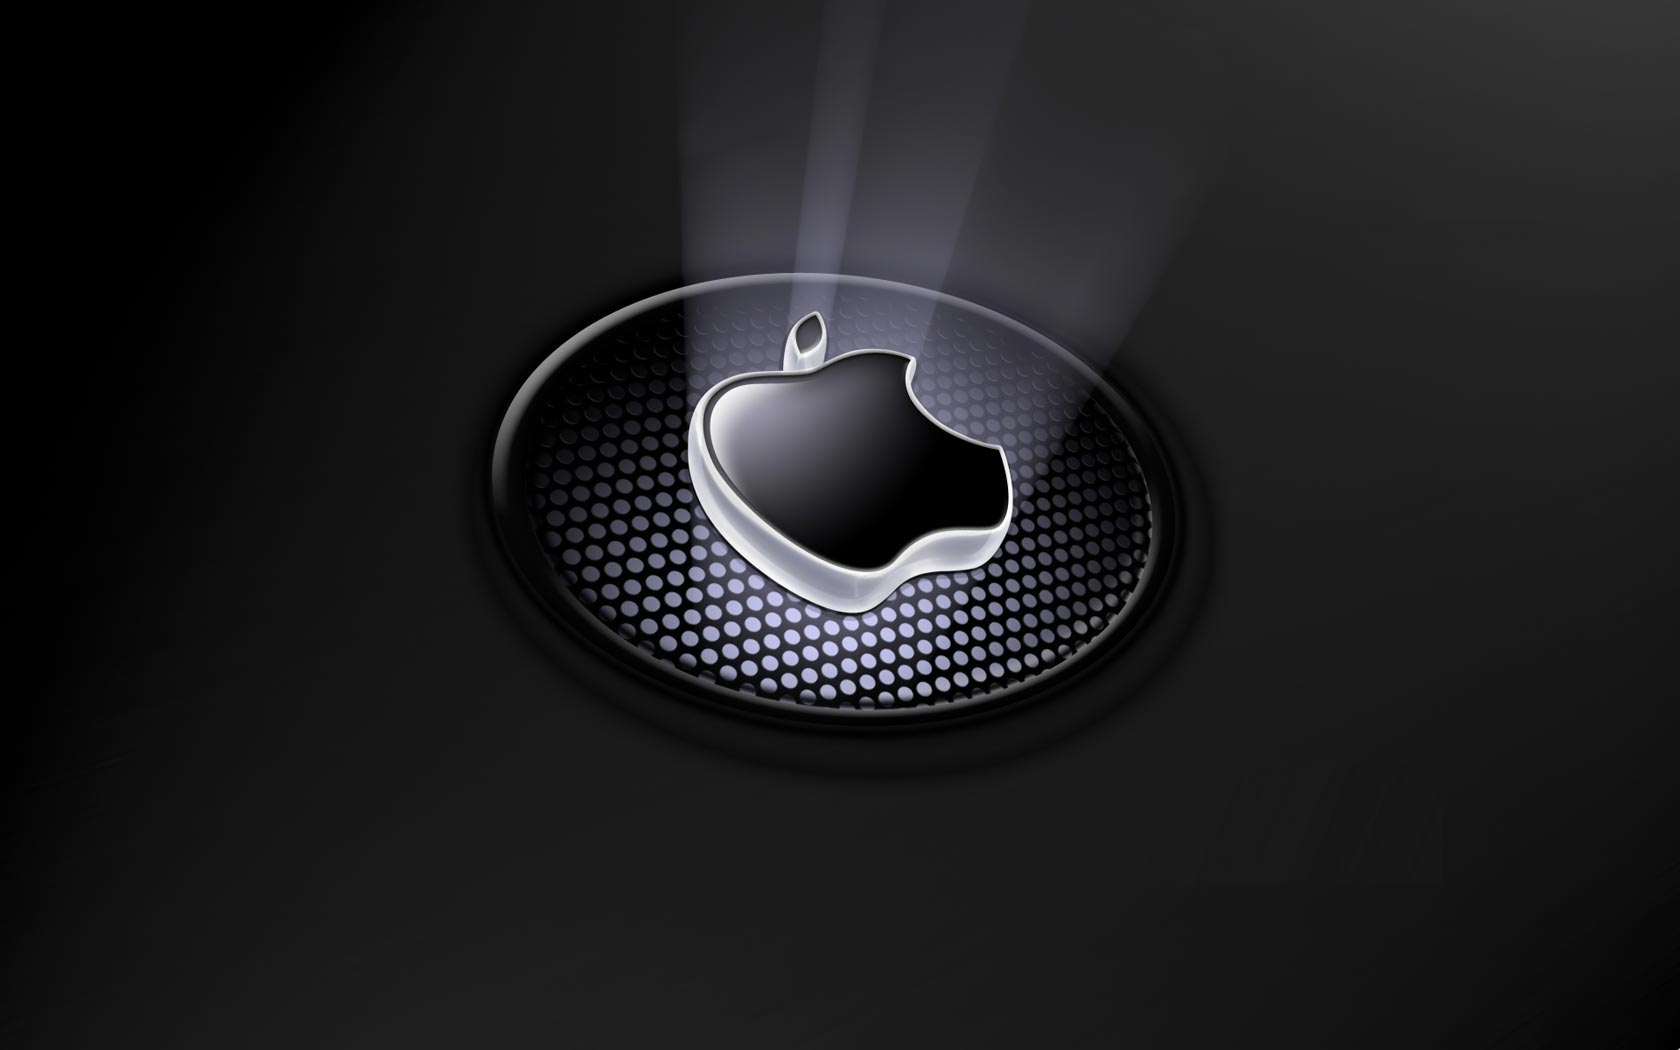 apple logo wallpaper | 1680x1050 | #84574